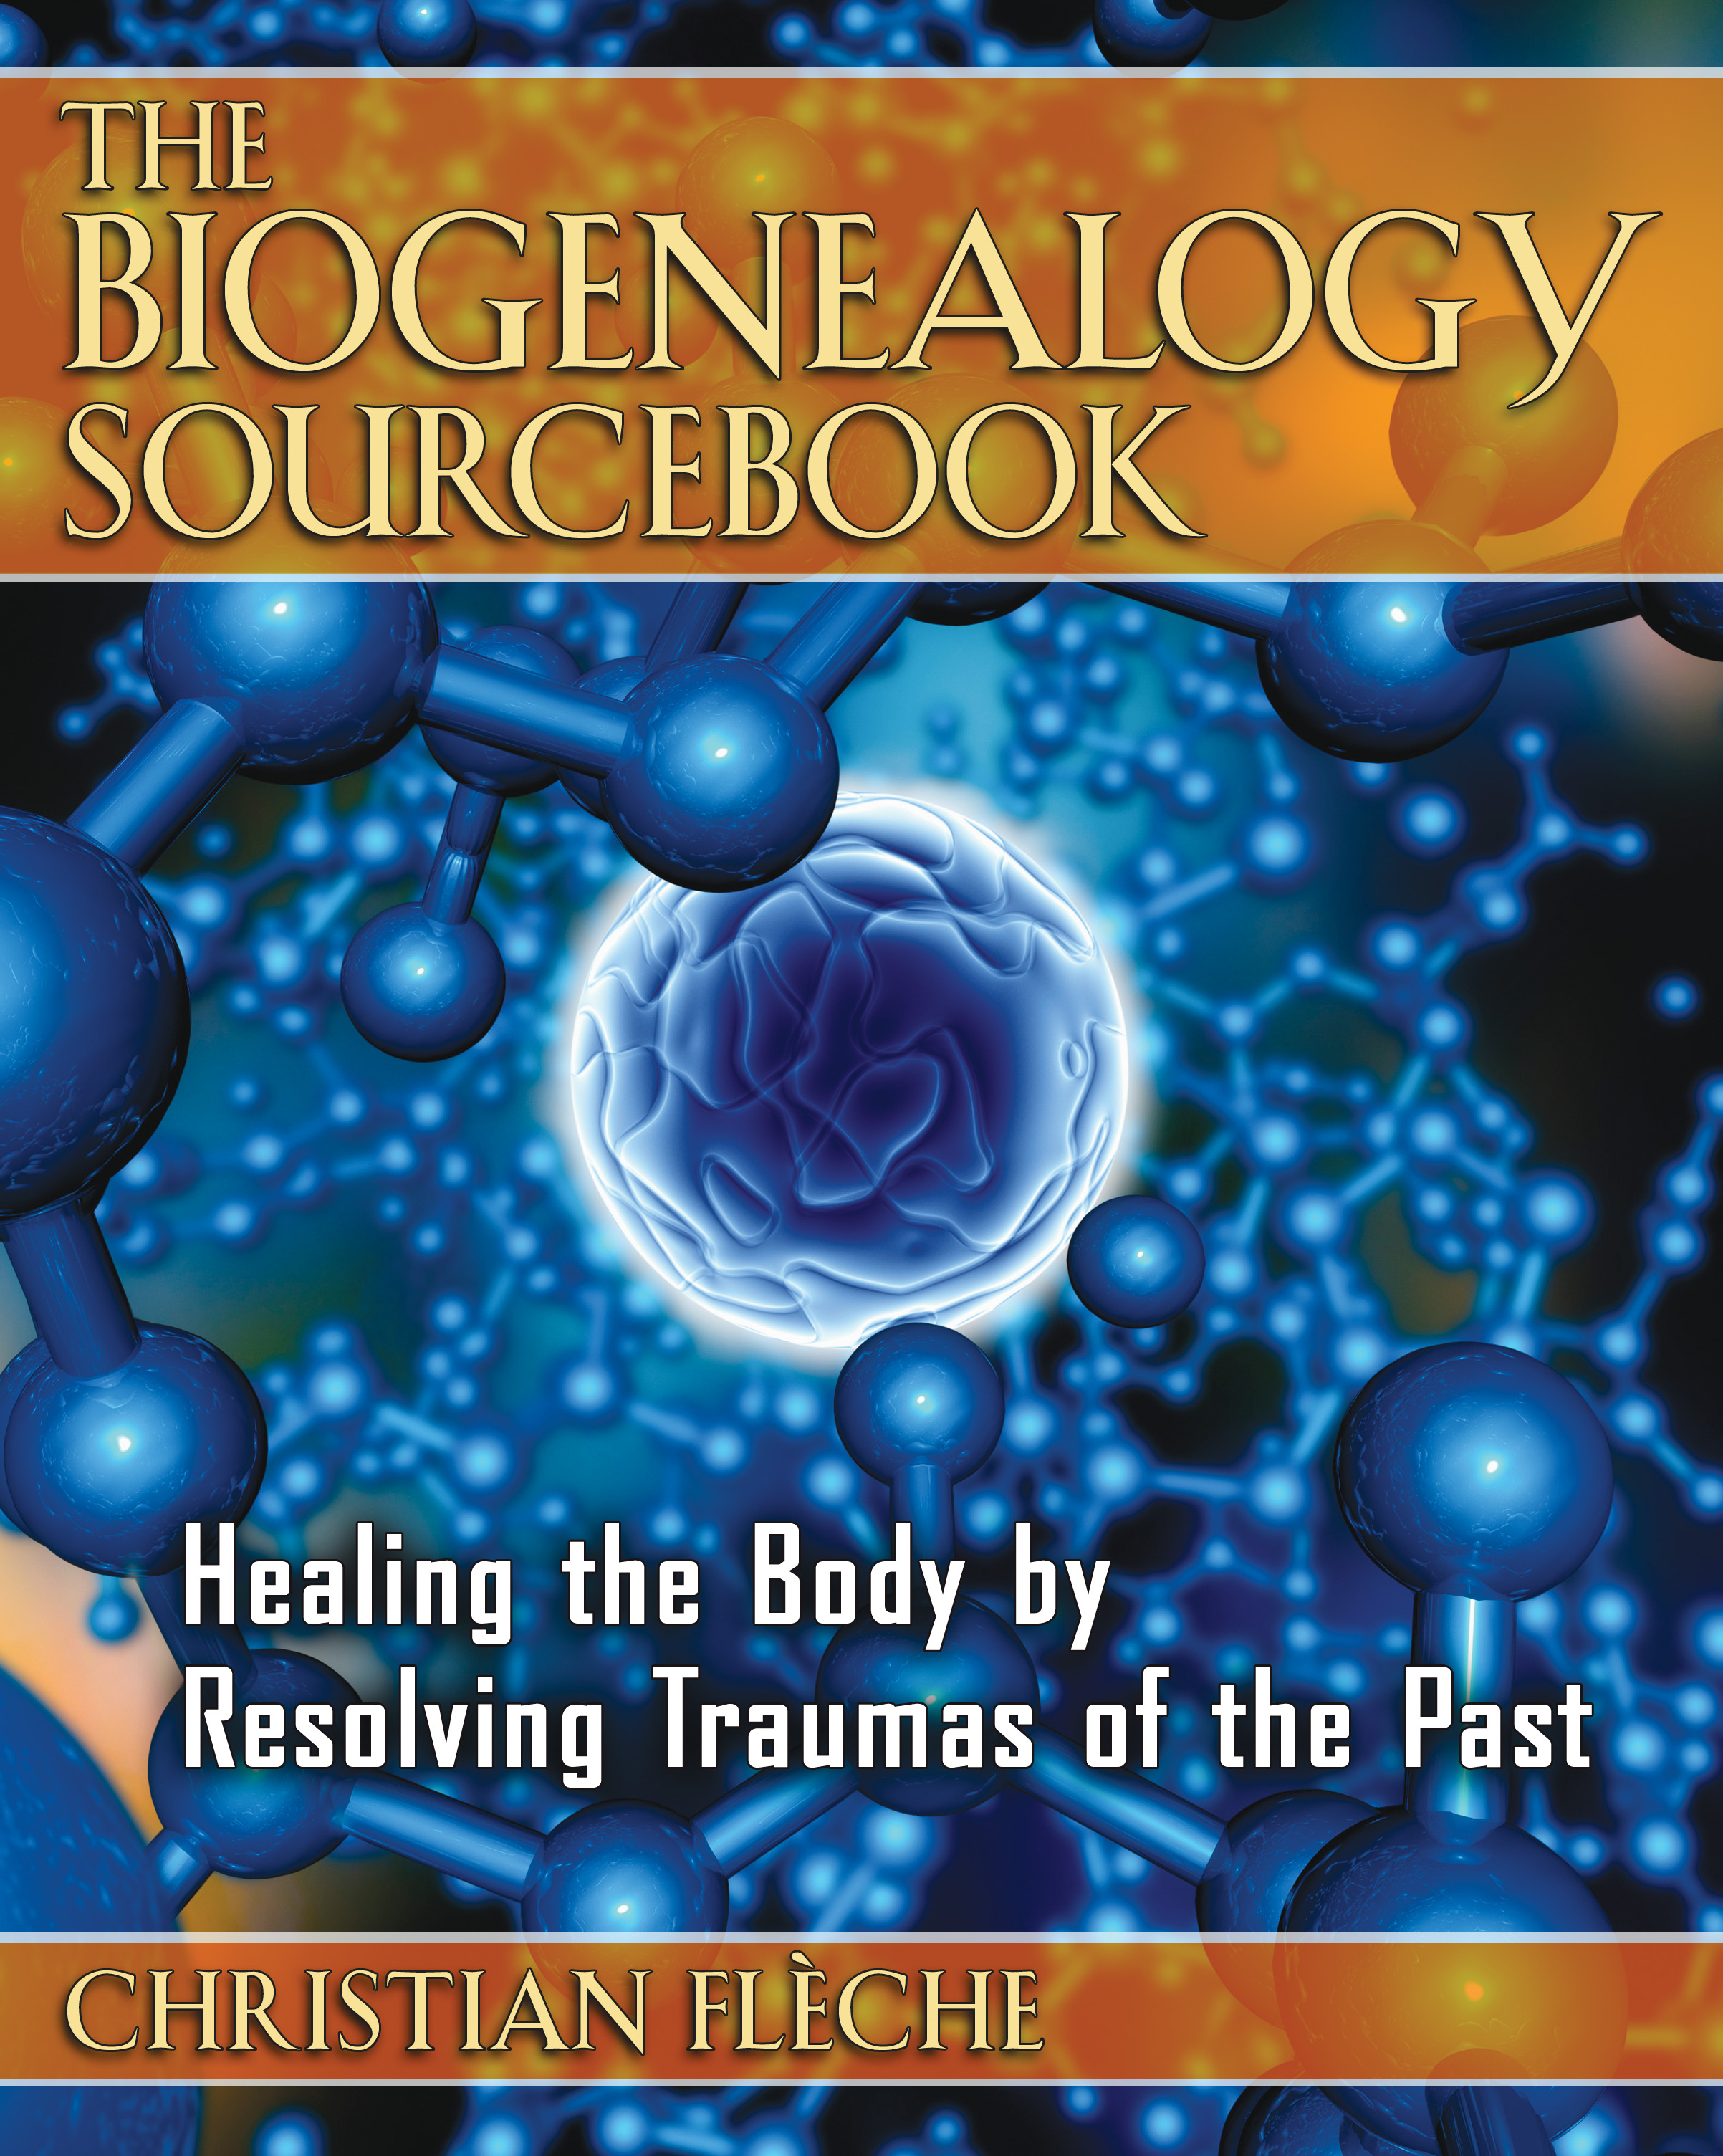 Biogenealogy sourcebook